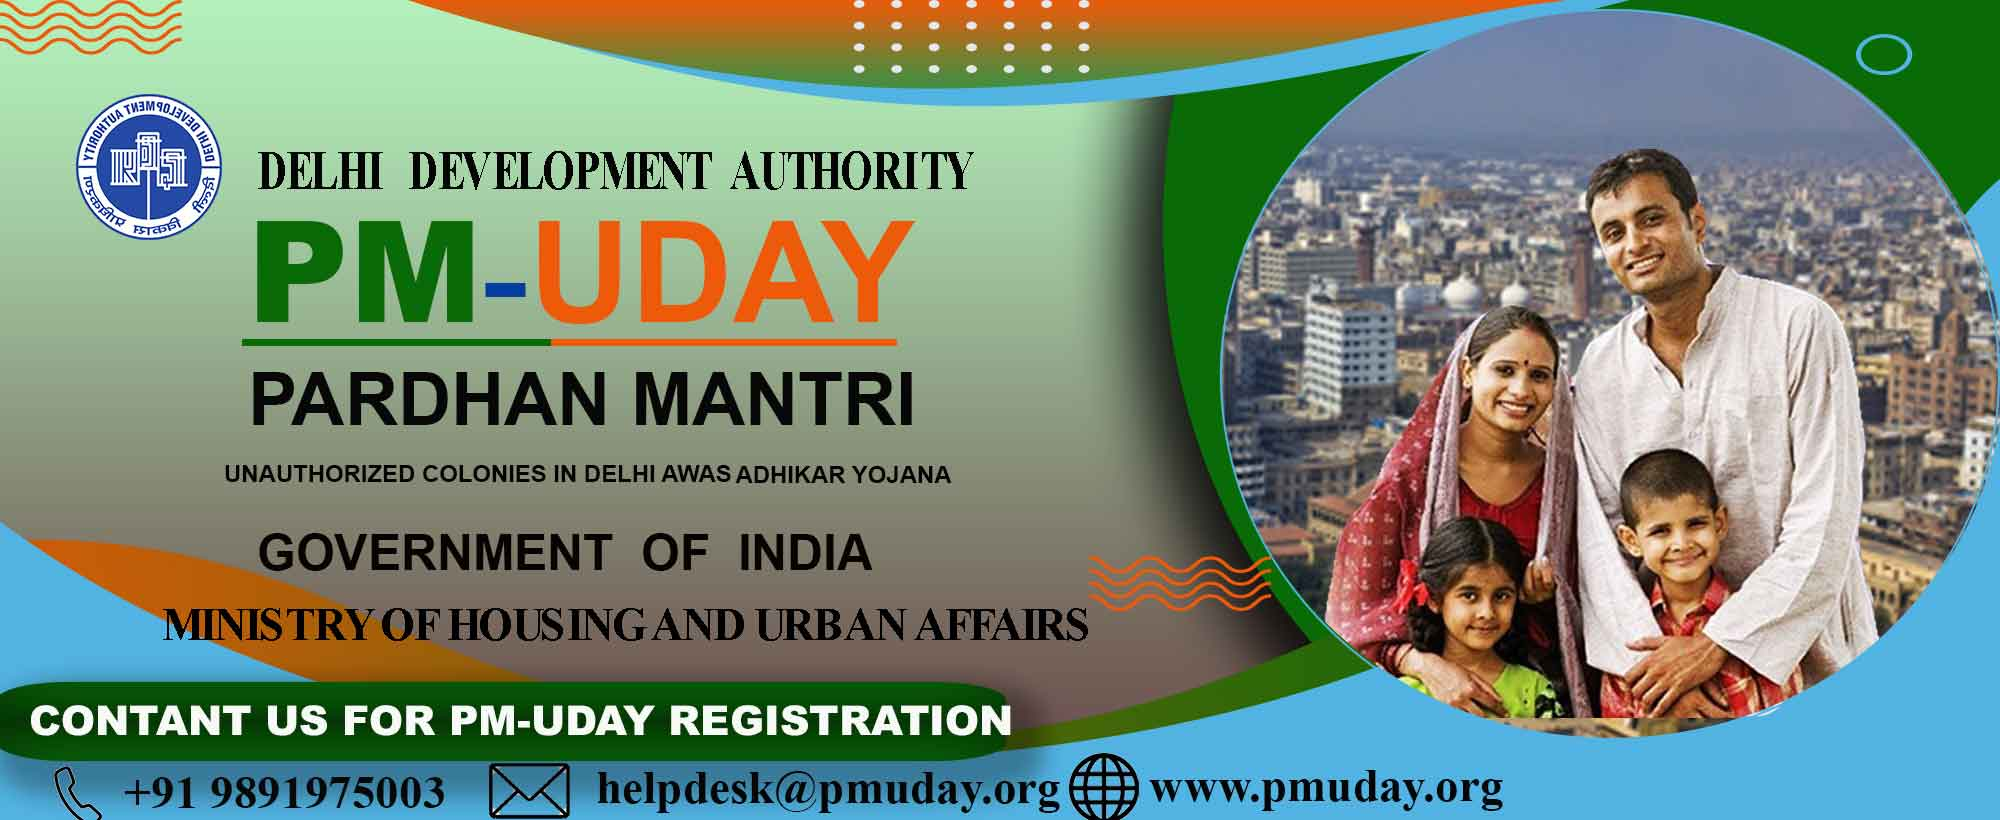 pmuday banner